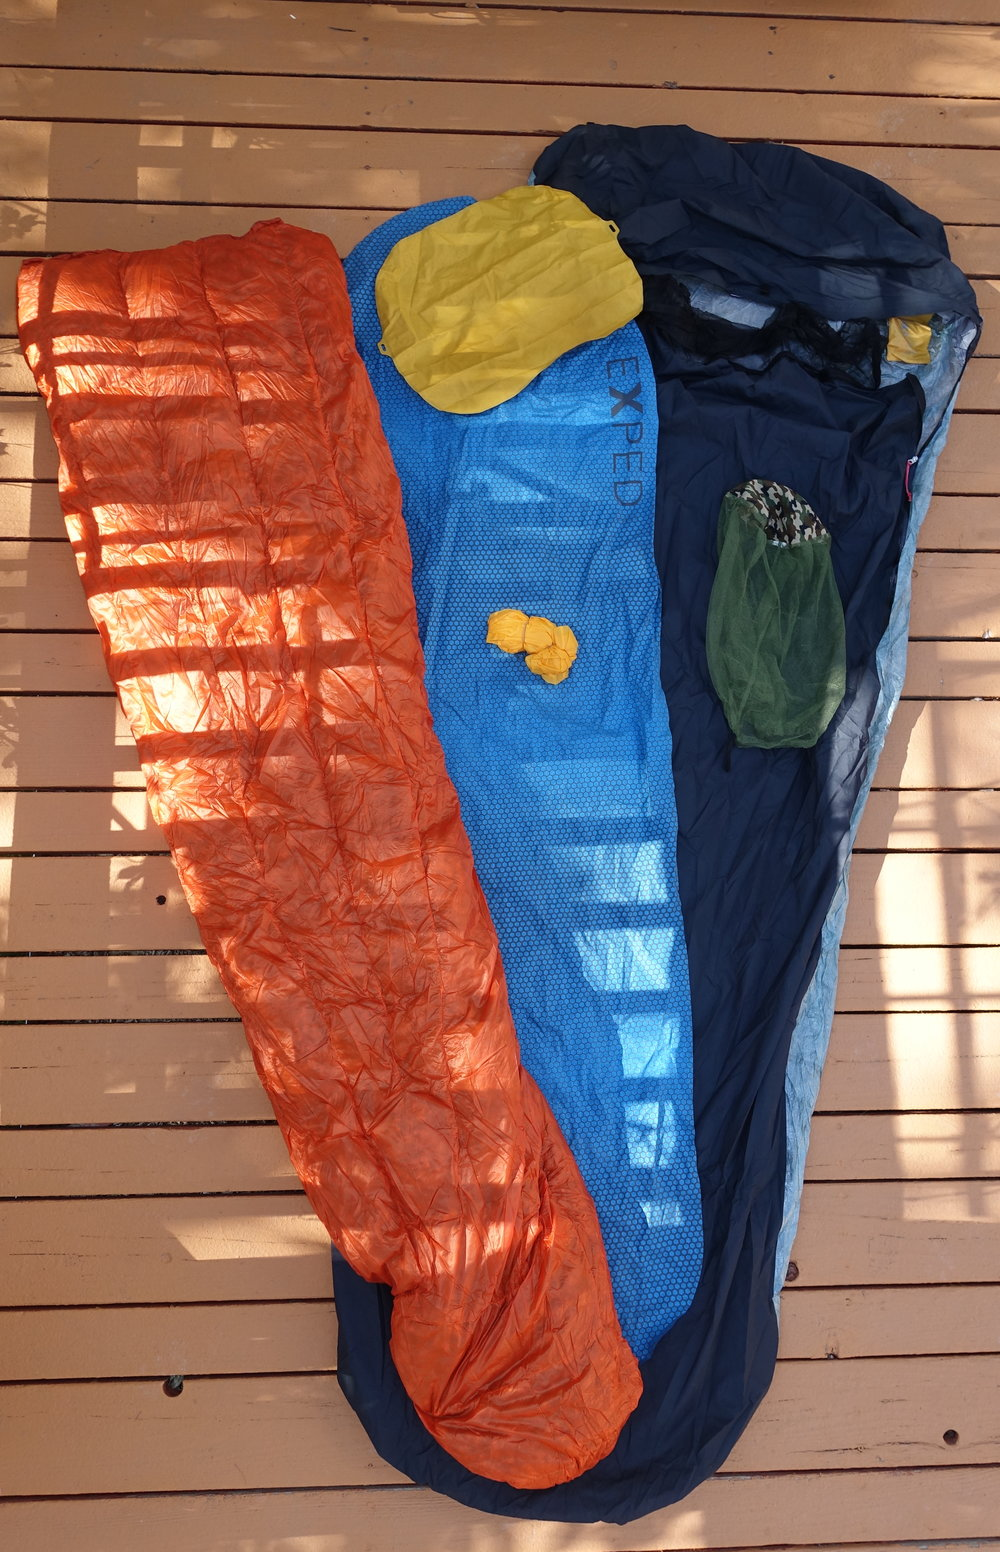 Here's my sleep system. I use a Borah Gear bivy, Exped pad and pillow, and an Enlightened Equipment quilt. The small yellow ball is a bag used to inflate the sleeping pad. There's a mosquito net to help with both sleep and on-bike insect encounters. Inside the bivy, you can see a small yellow pocket. I stuck that to the inside of the bivy and keep ear plugs in it.